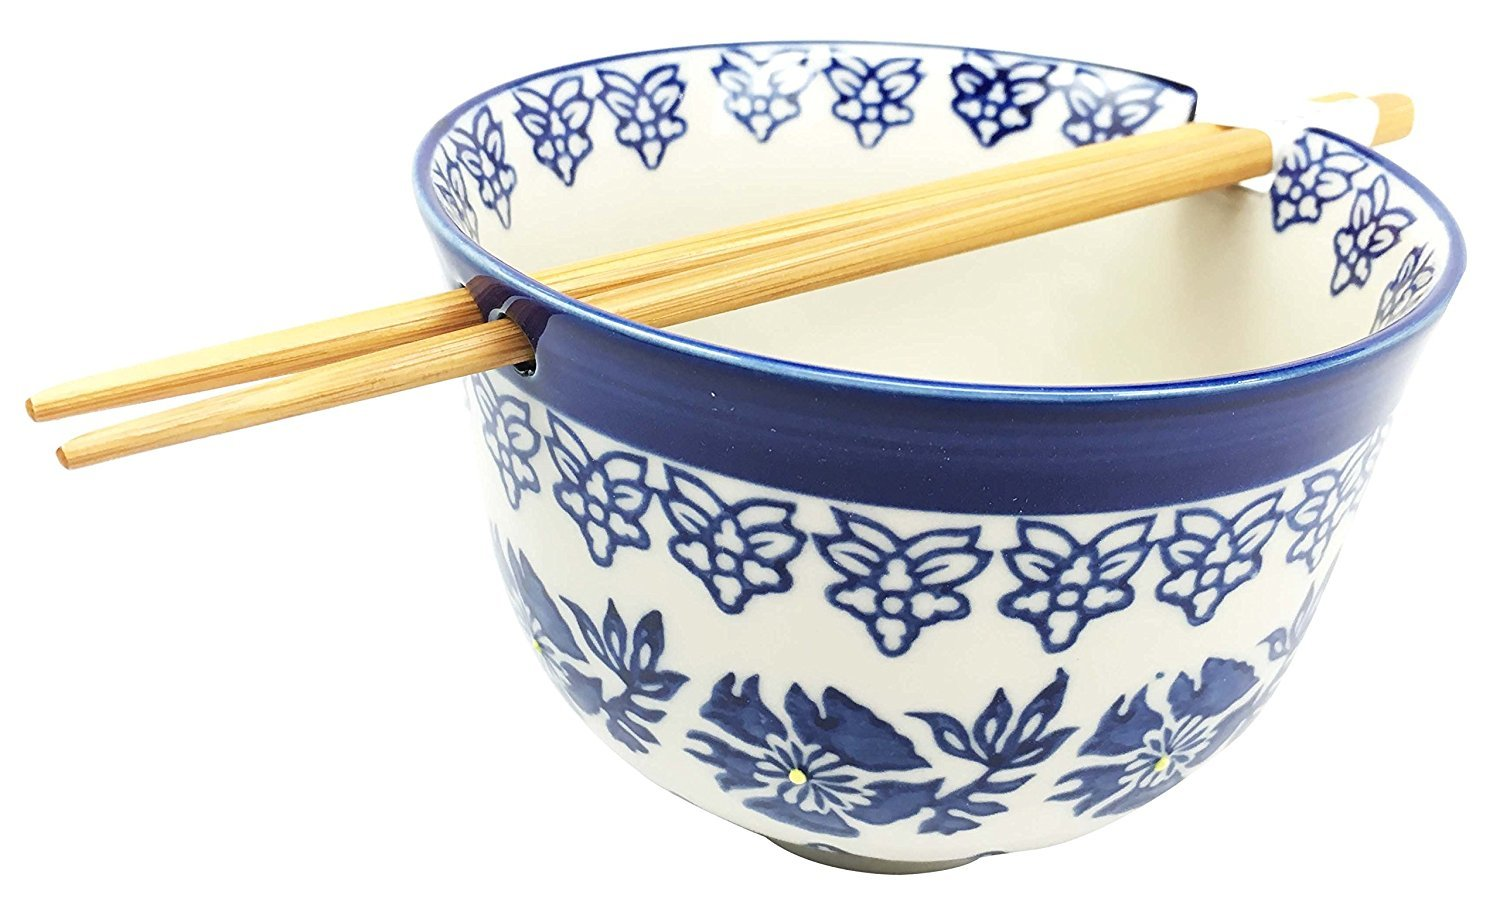 Japanese Design Blue Unison Symmetry Pattern Ceramic Ramen Udong Noodle Soup Bowl and Chopsticks Set Great Gift For College Students Housewarming Ramen Lovers Asian Living Home Decor Gifts & Decors